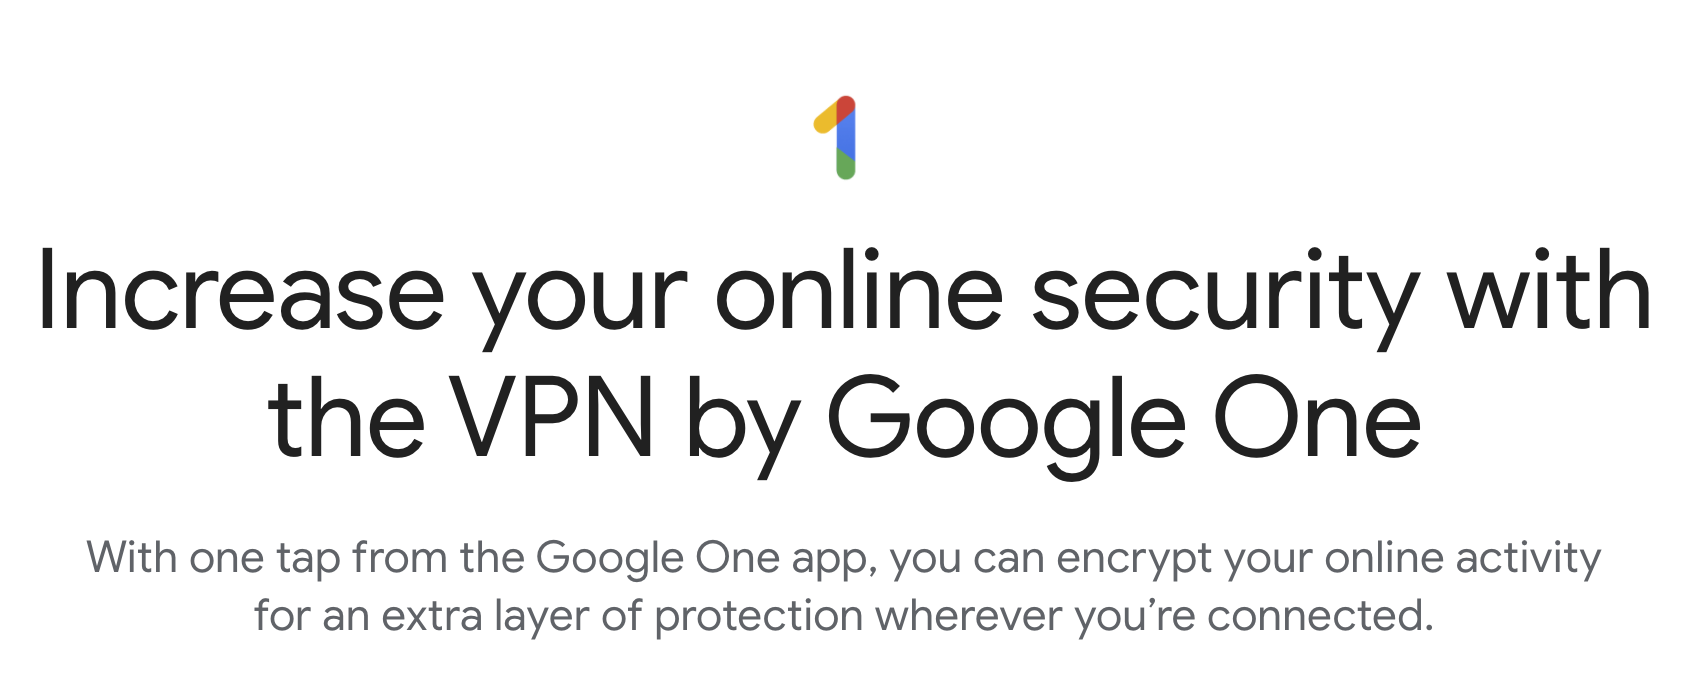 How to Enable VPN by Google One on Android phones